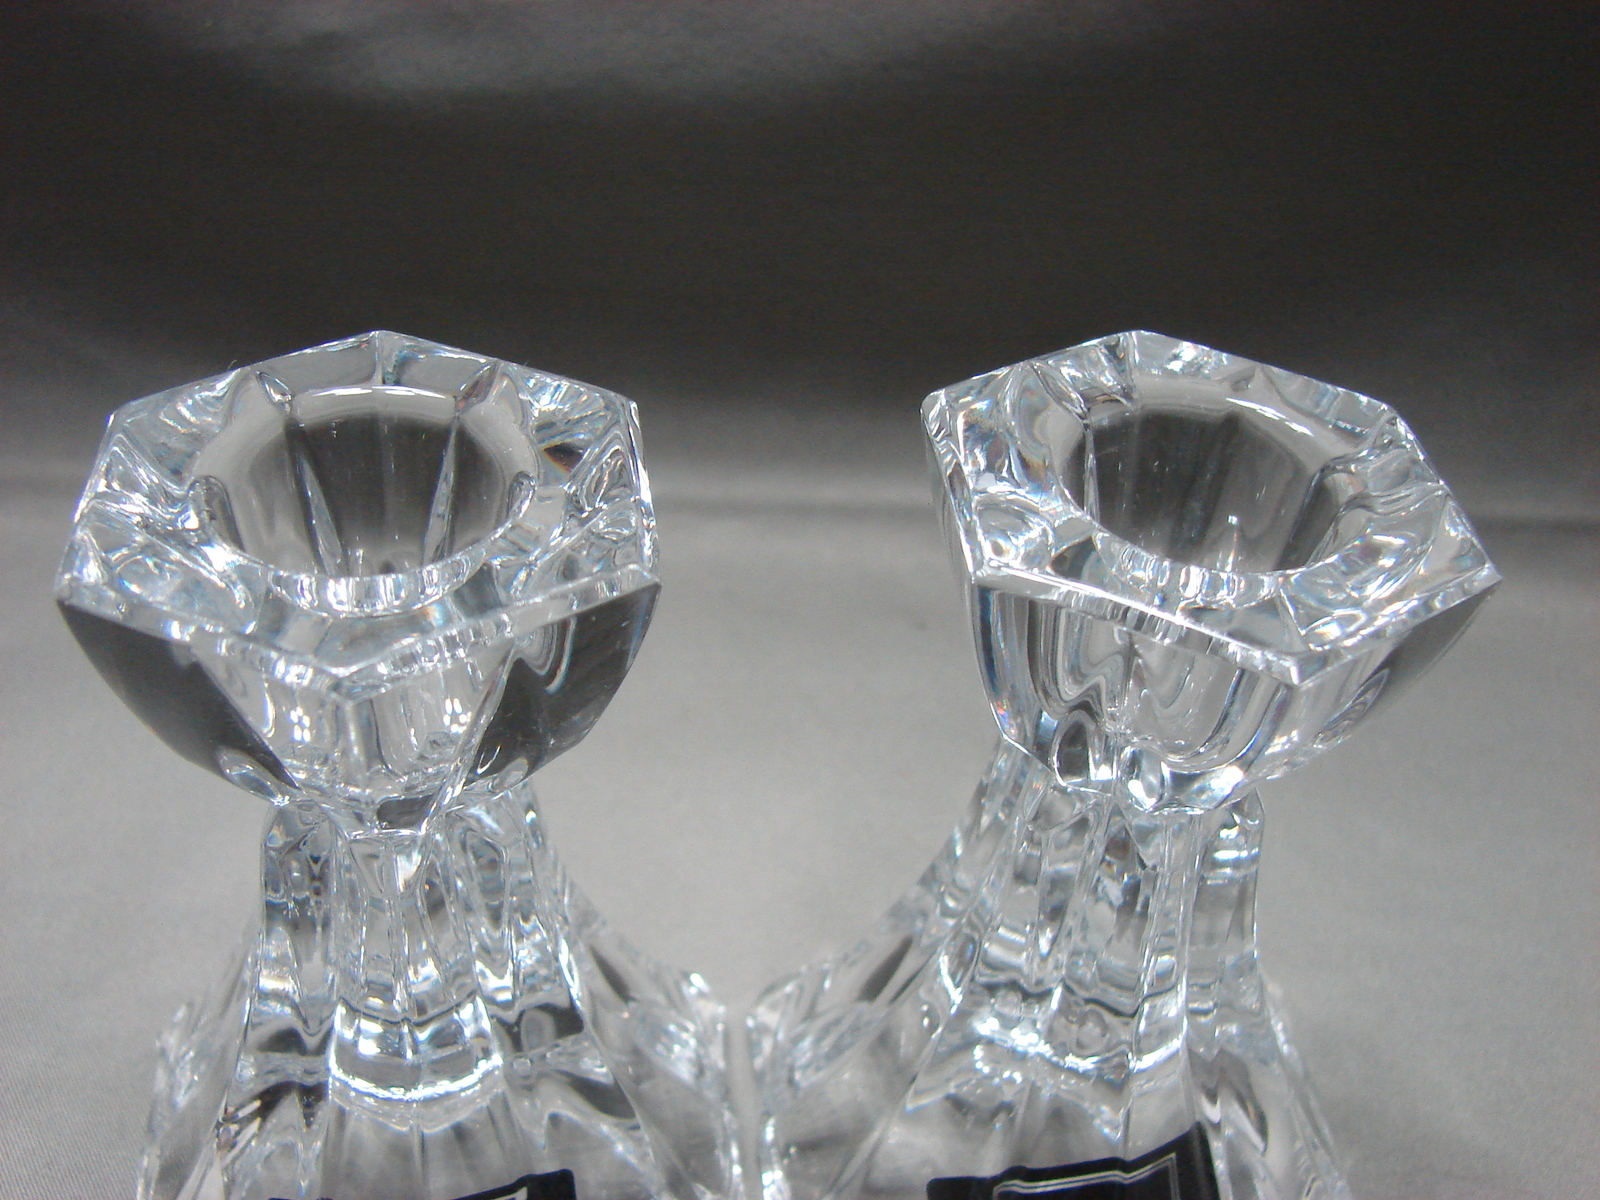 Mikasa Linear Candleholders Pair Crystal 3.5 inches tall image 2